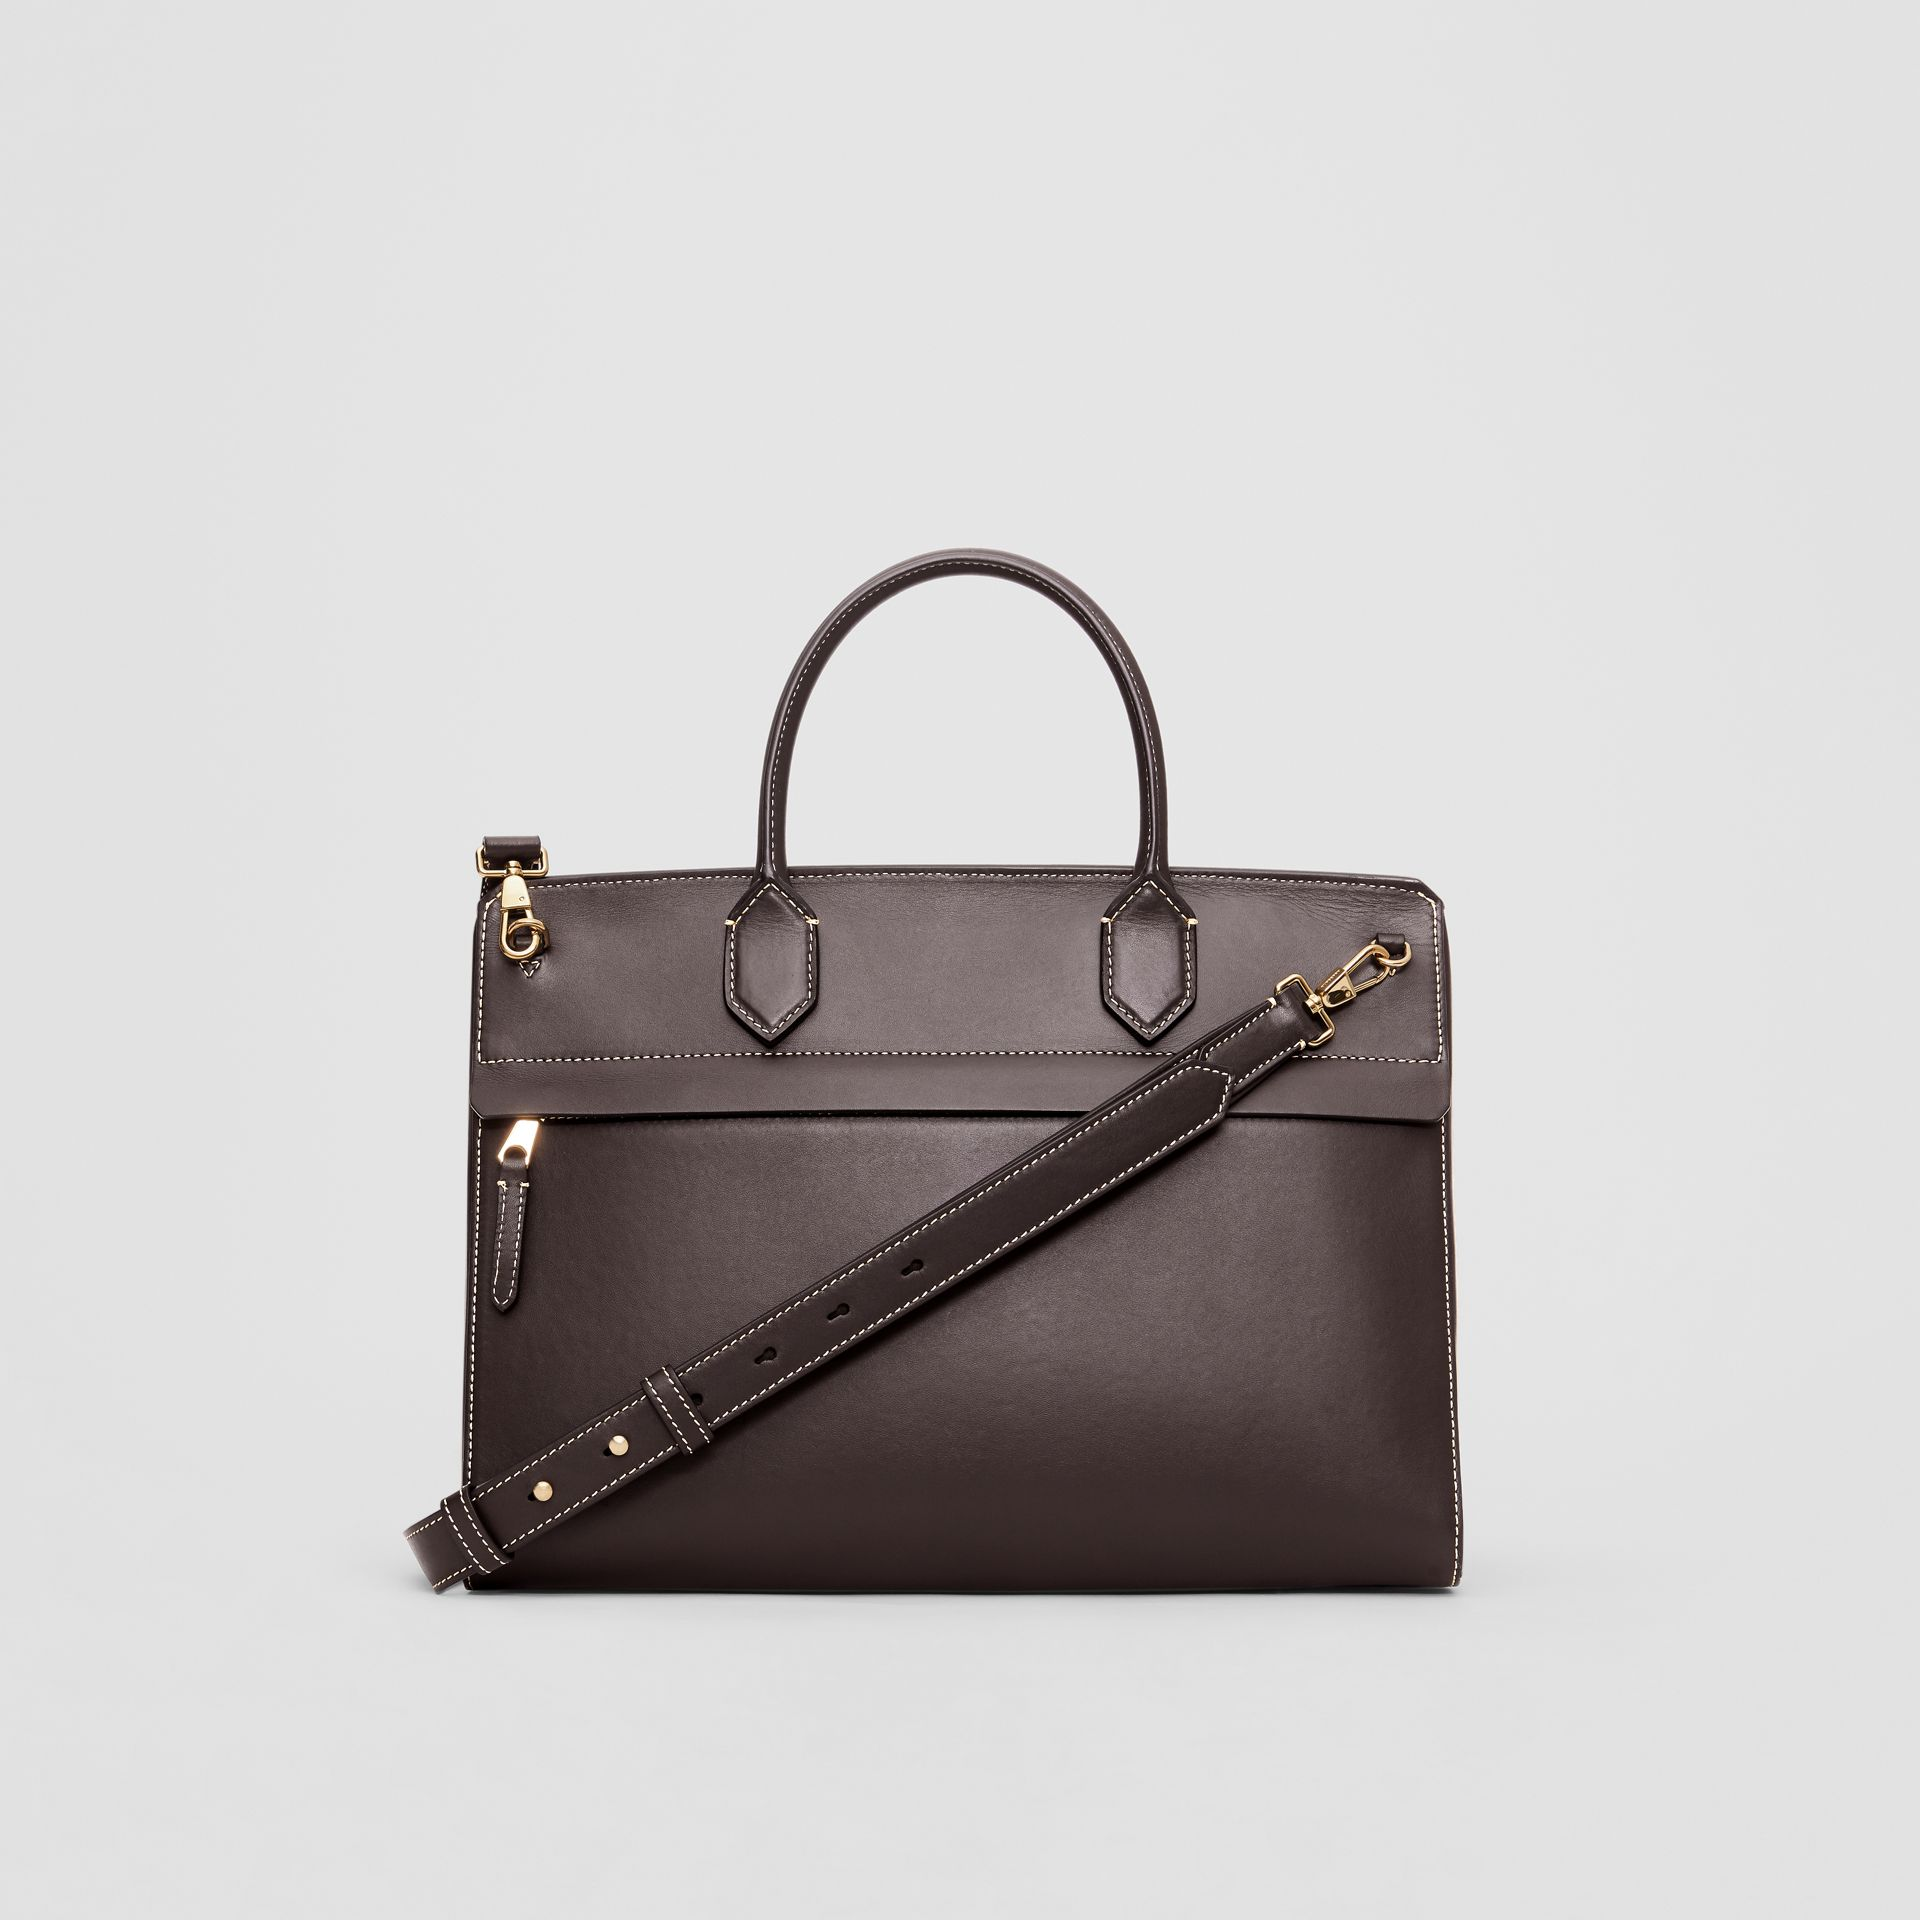 Medium Leather Elizabeth Bag in Coffee - Women | Burberry United States - gallery image 7